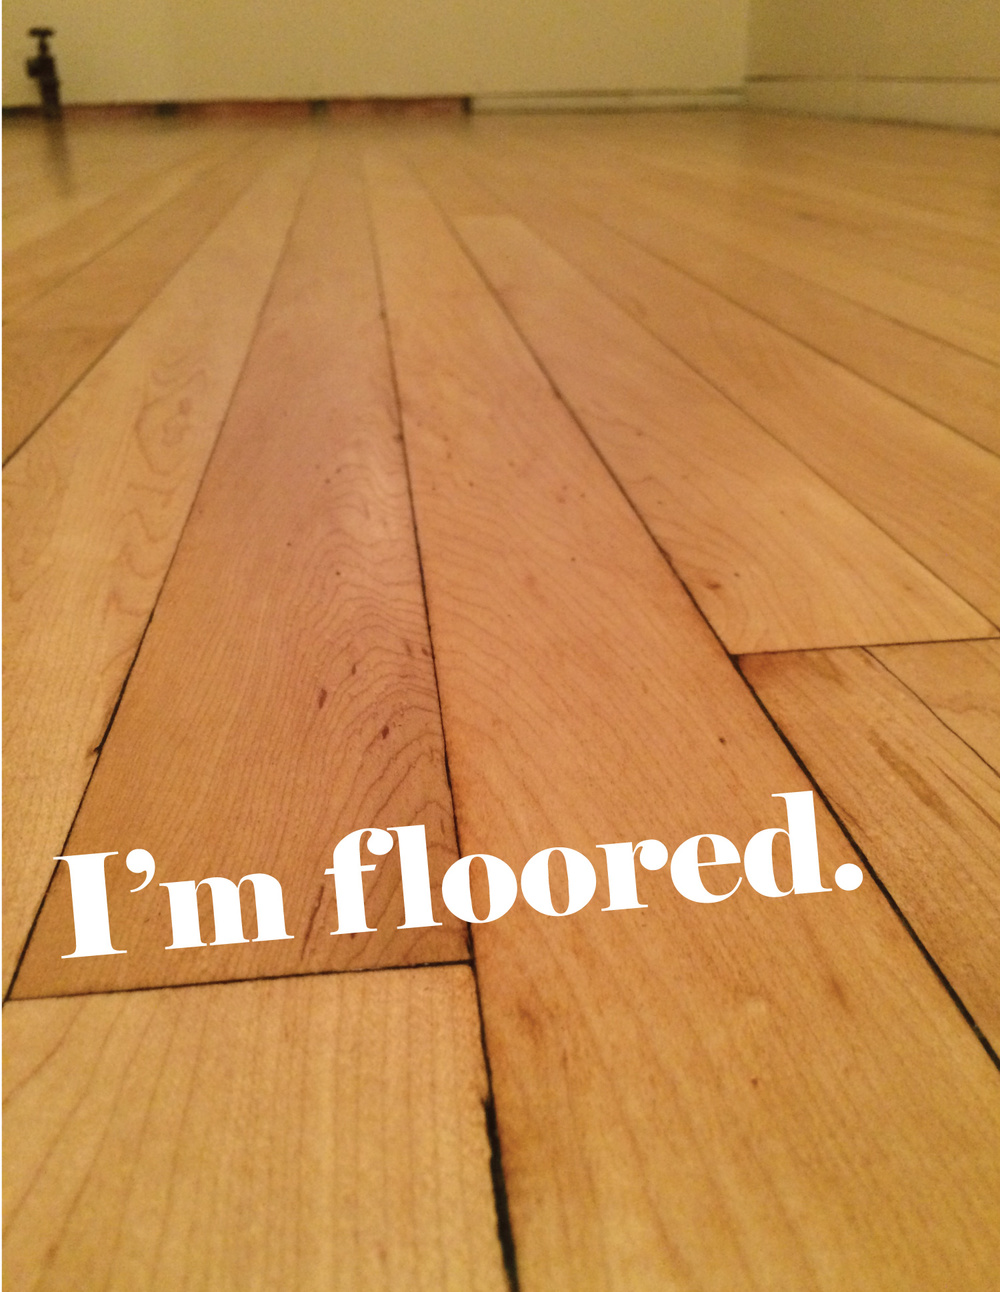 completed hard wood floors